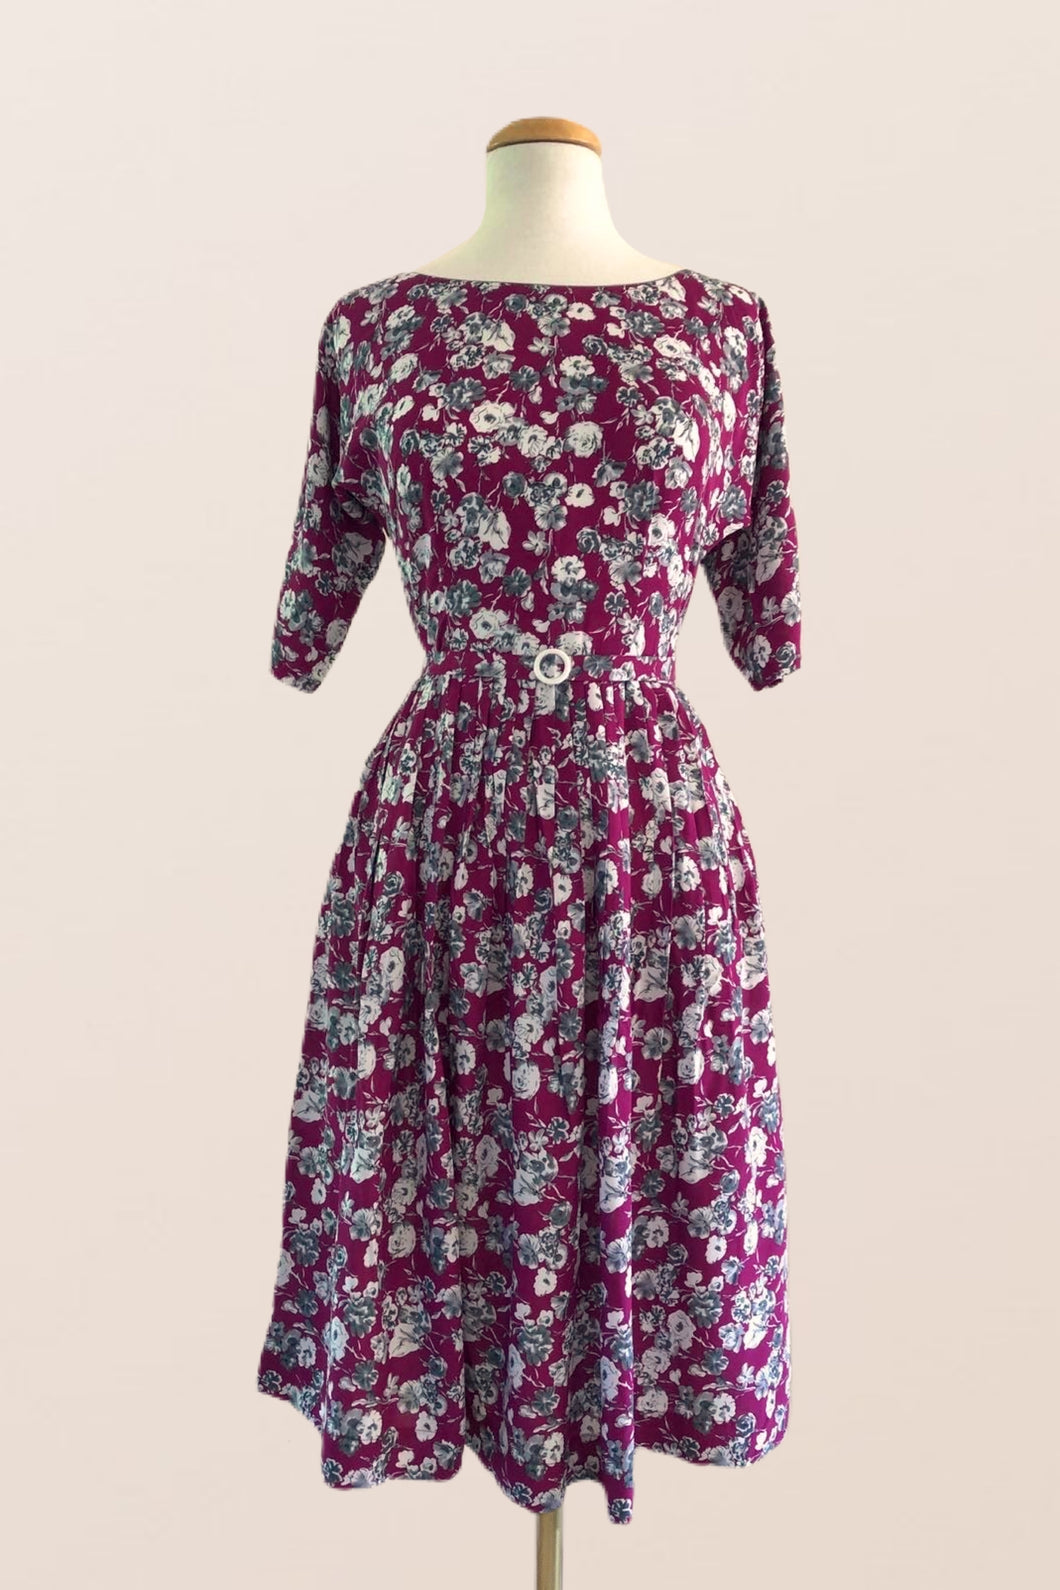 Clarissa Purple Floral Dress